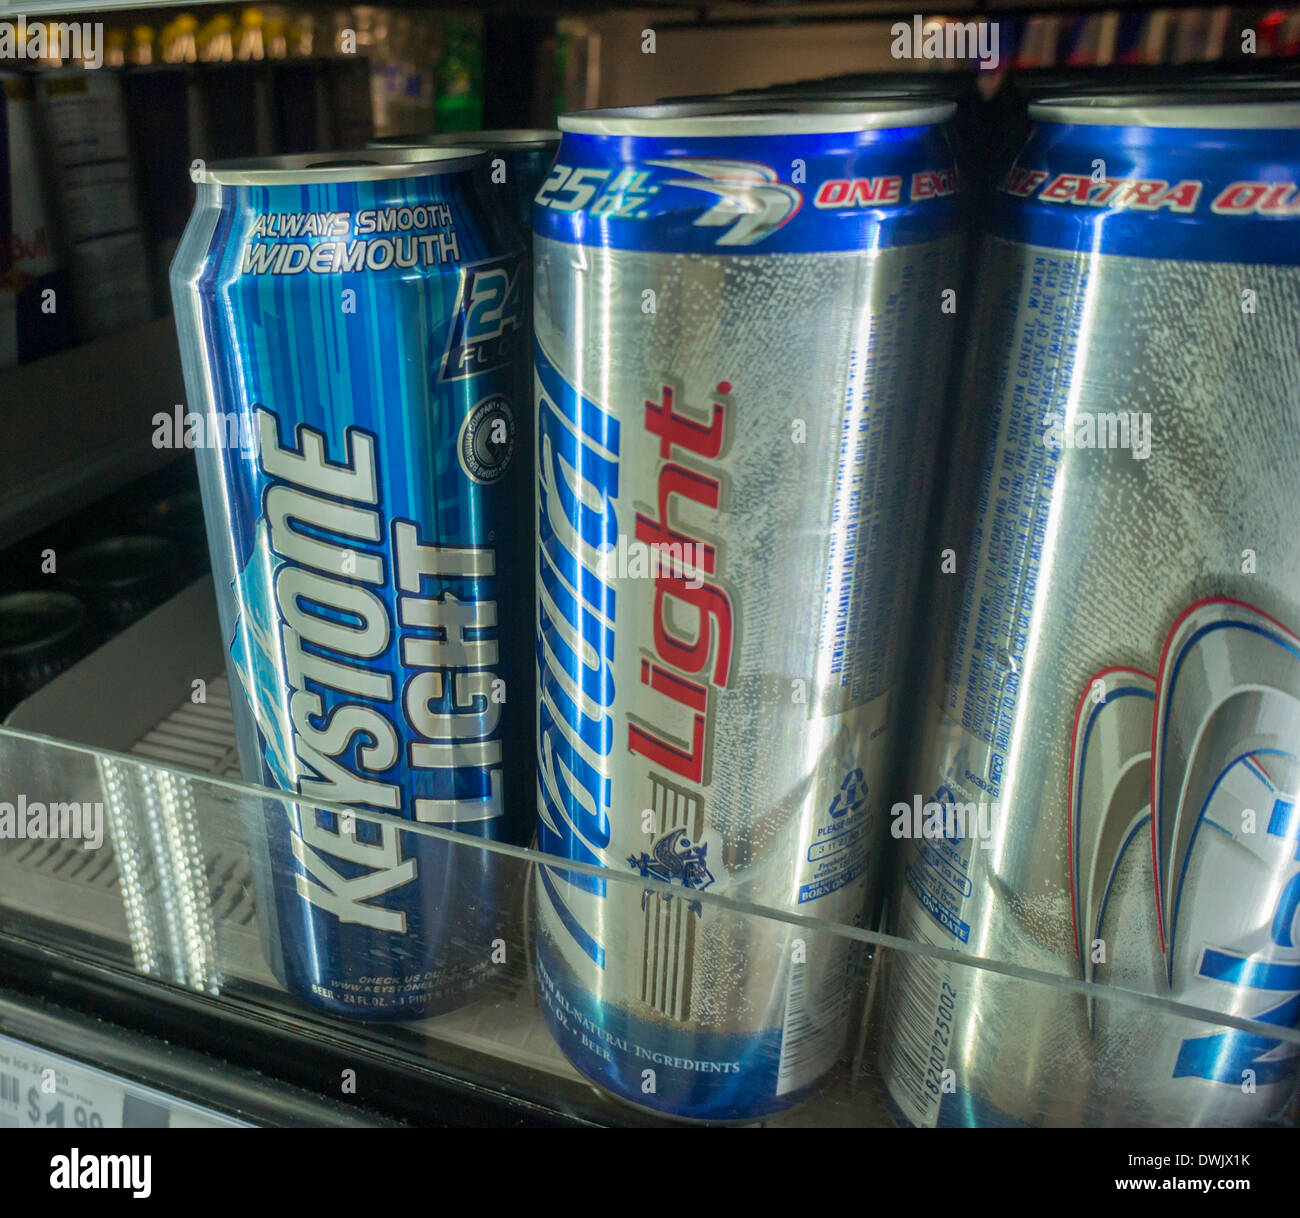 Keystone Light Alcohol Content